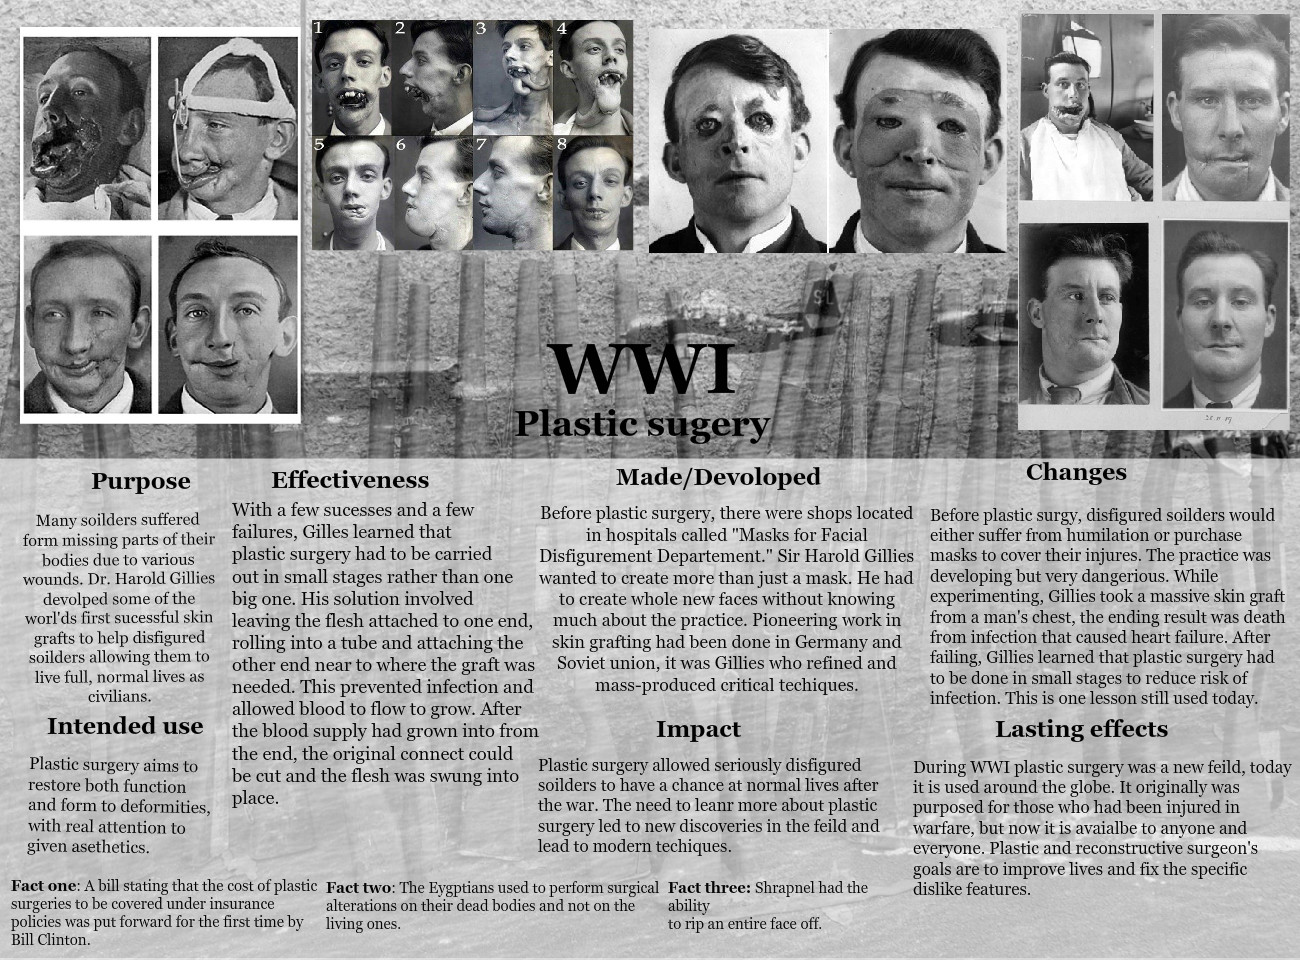 Plastic Surgery during WWI